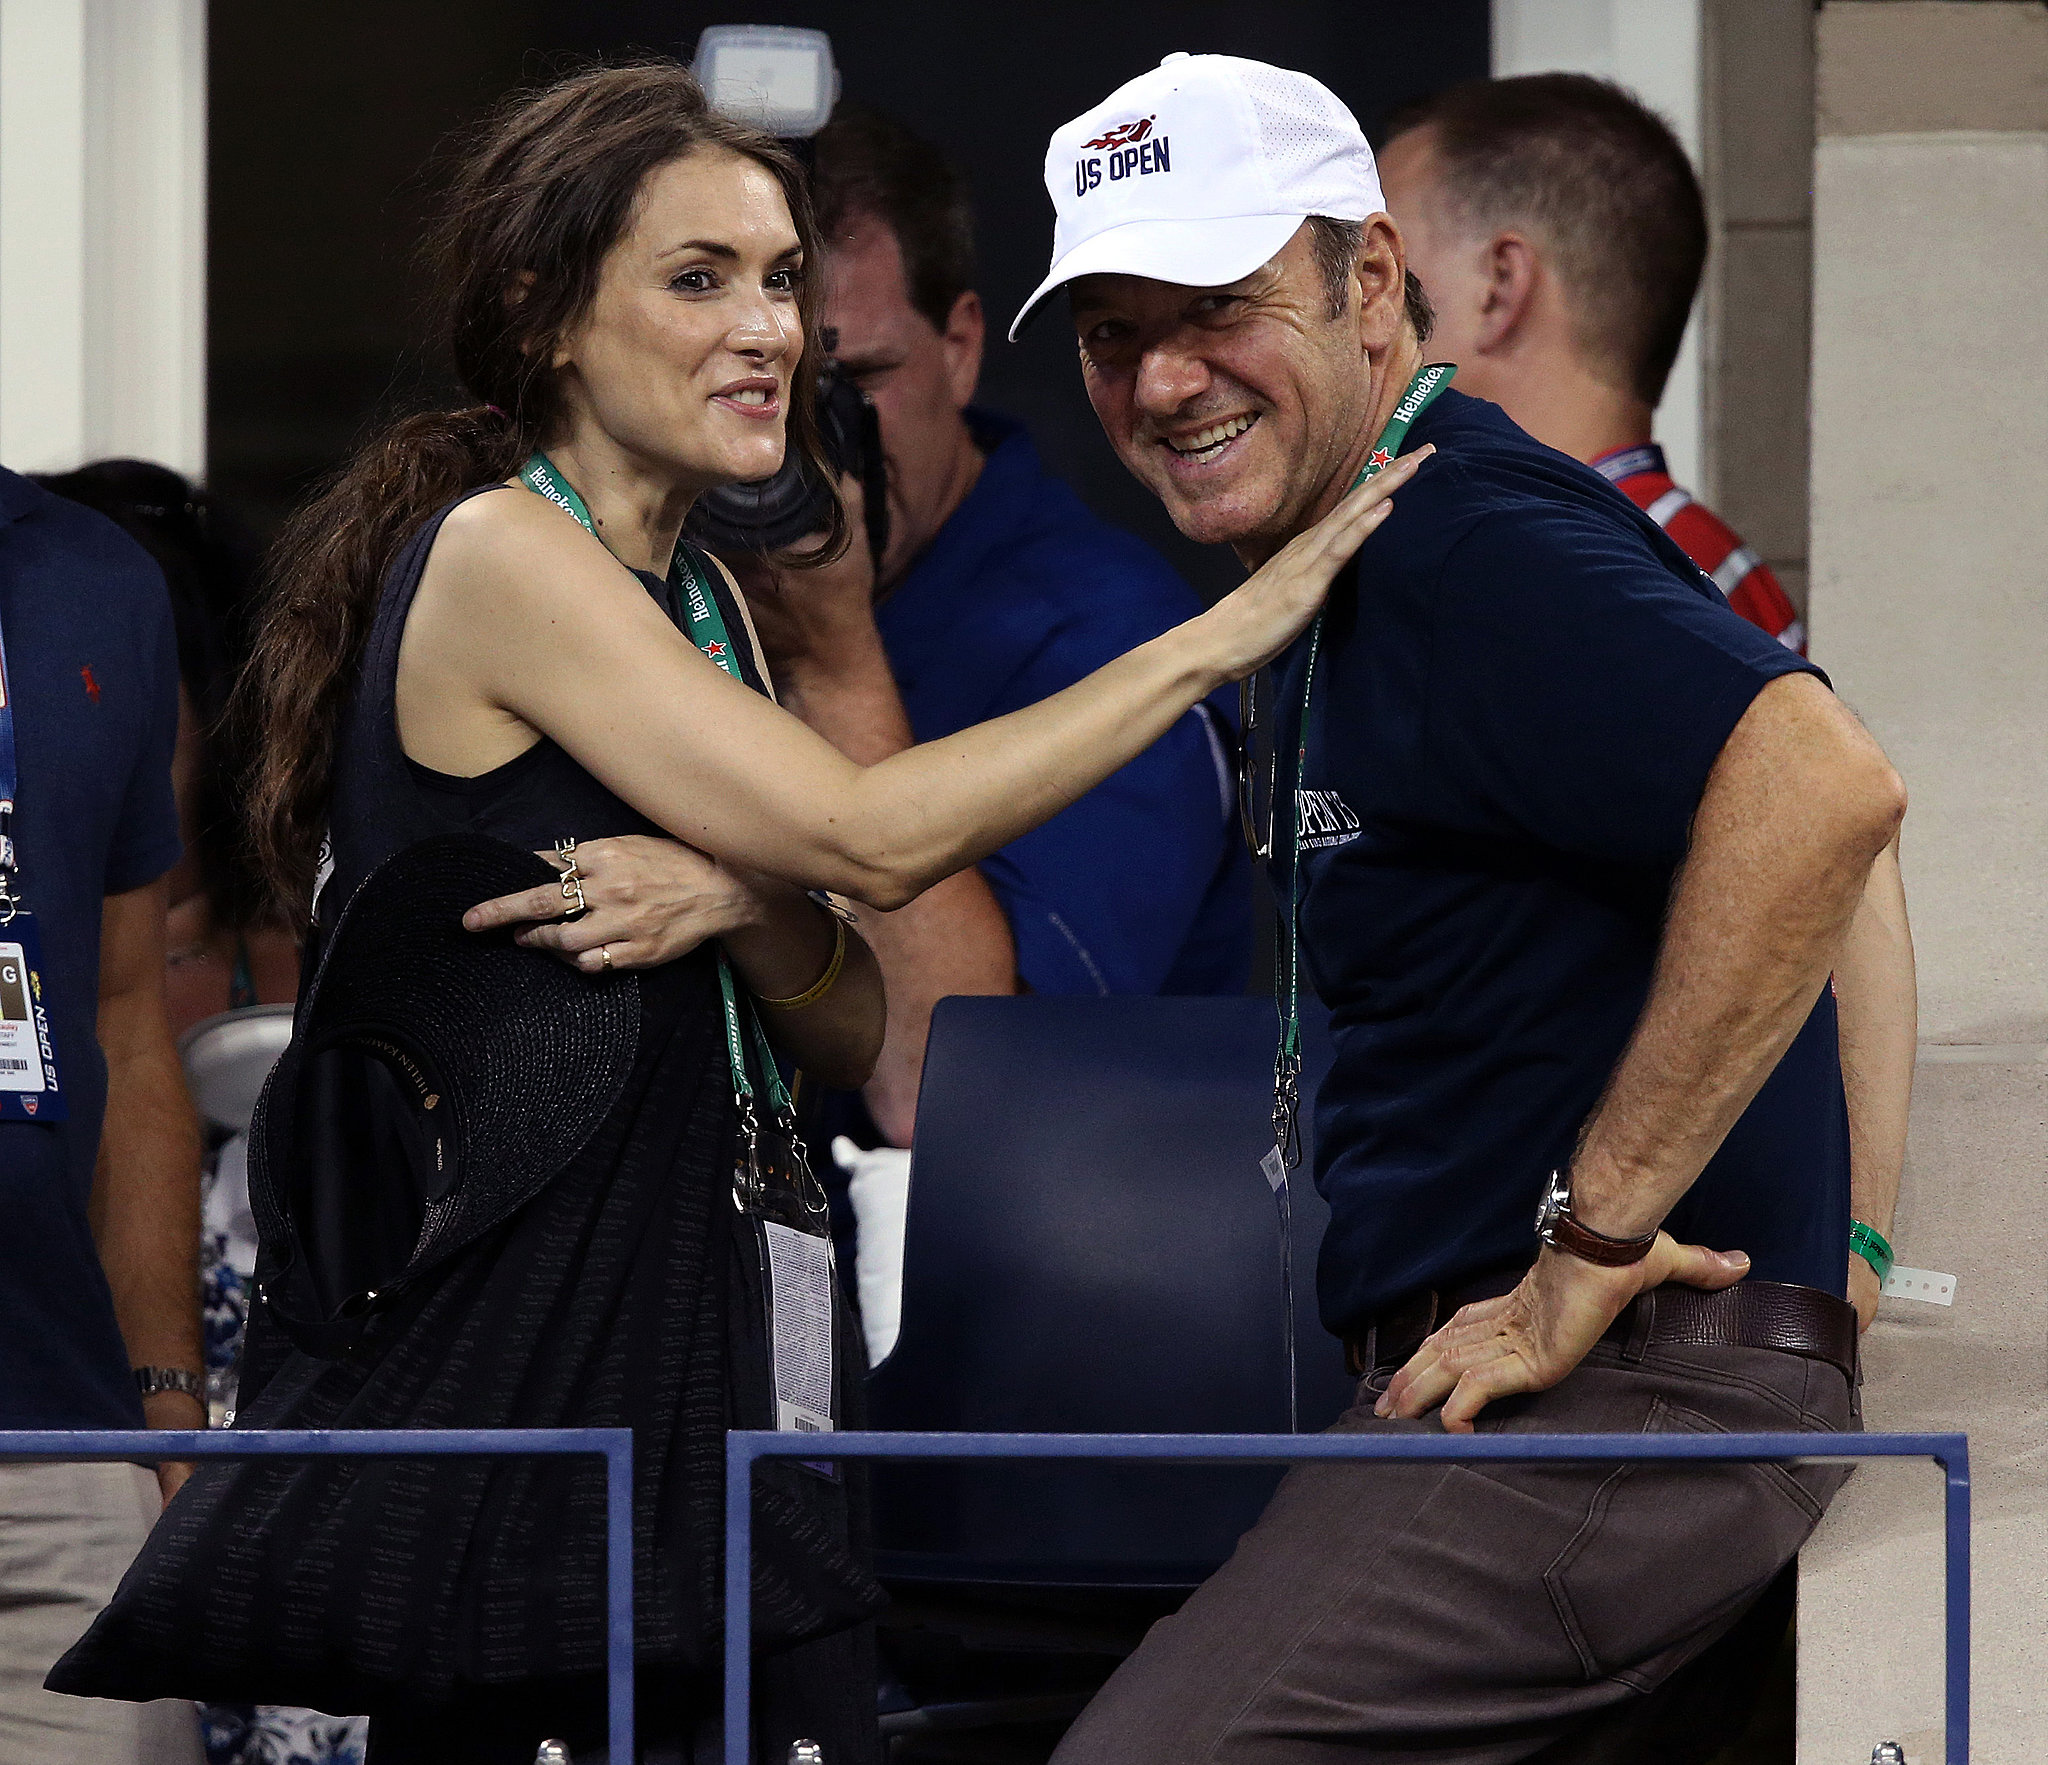 Winona Ryder and Kevin Spacey hung out together in the stands.